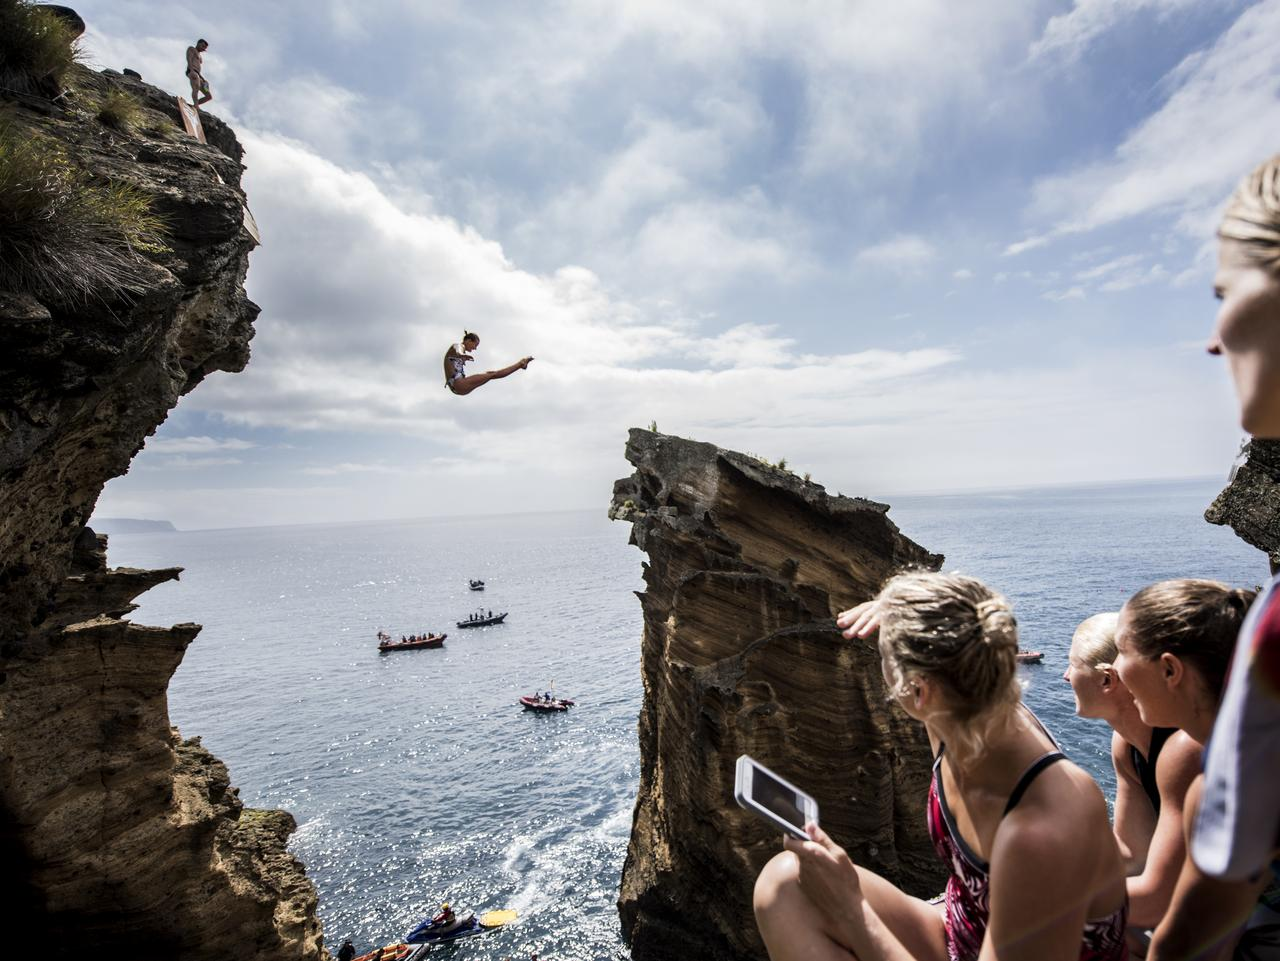 Rhiannan Iffland of Australia dives 20m from rock cliffs at Islet Franca do Campo while other divers watch on prior to third stop of the Red Bull Cliff Diving World Series, Sao Miguel, Azores, Portugal on July 7, 2016.